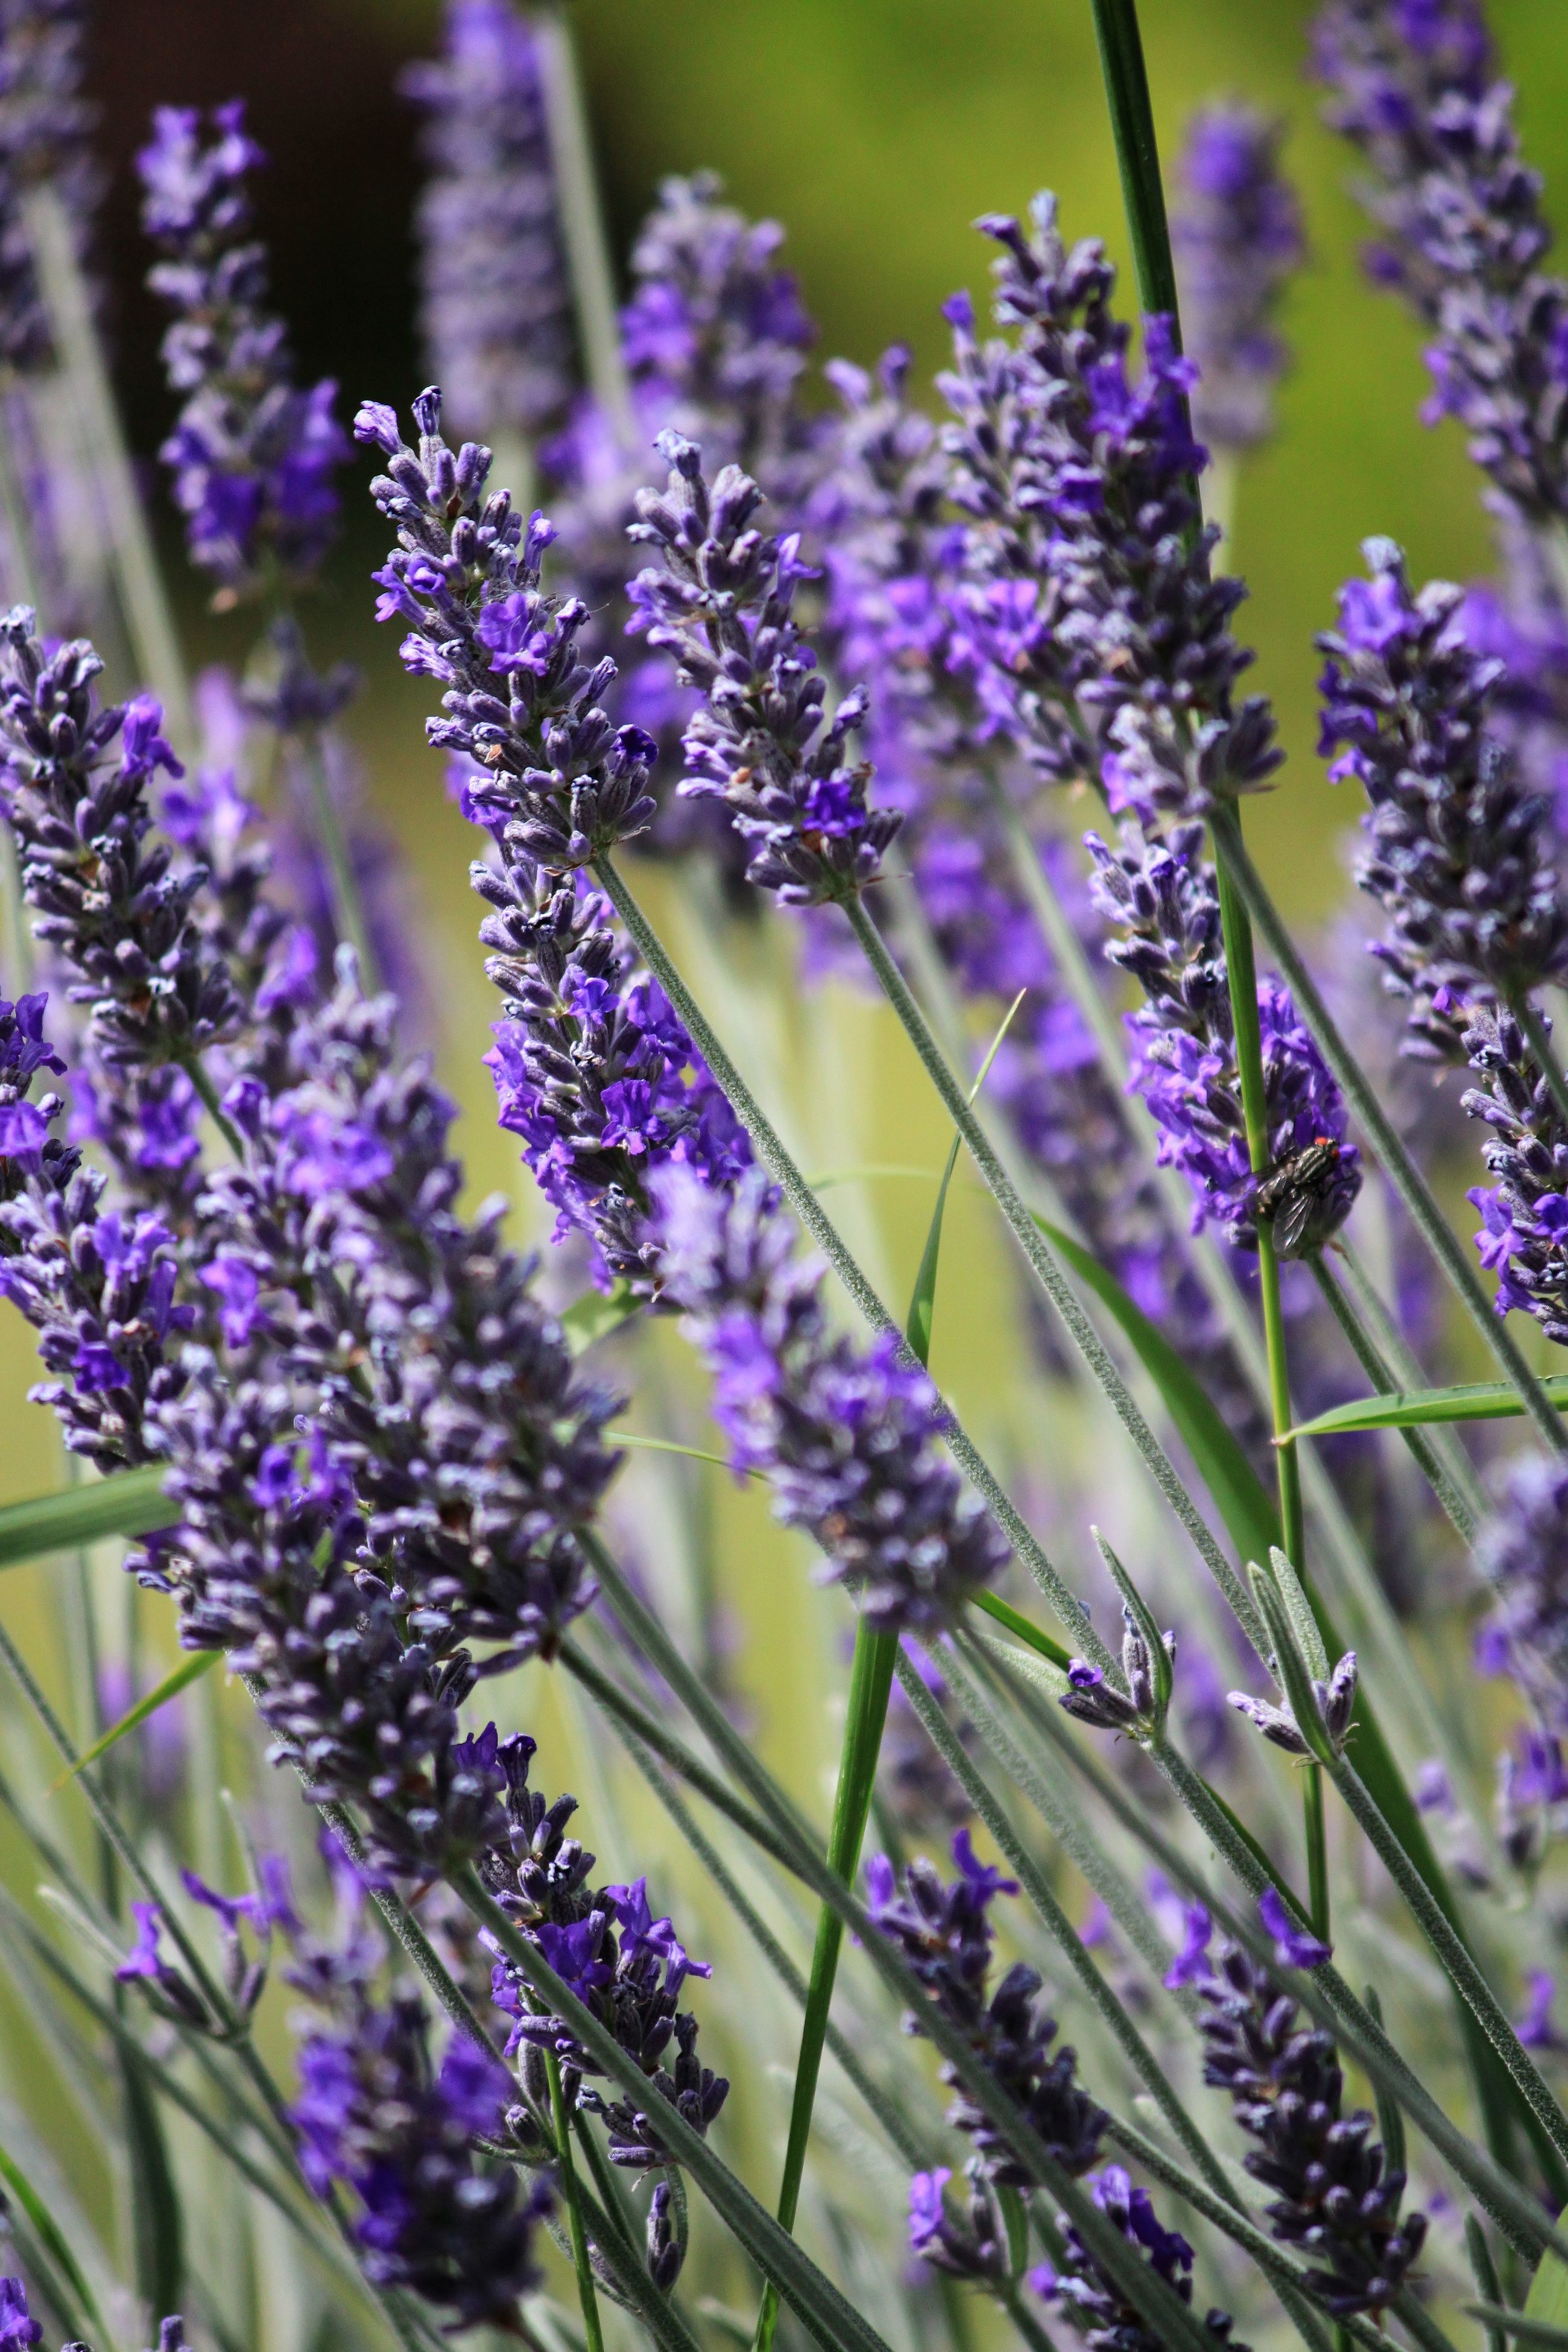 nature, flower, growth, purple, plant, beauty in nature, fragility, freshness, no people, outdoors, lavender, day, close-up, animal themes, flower head